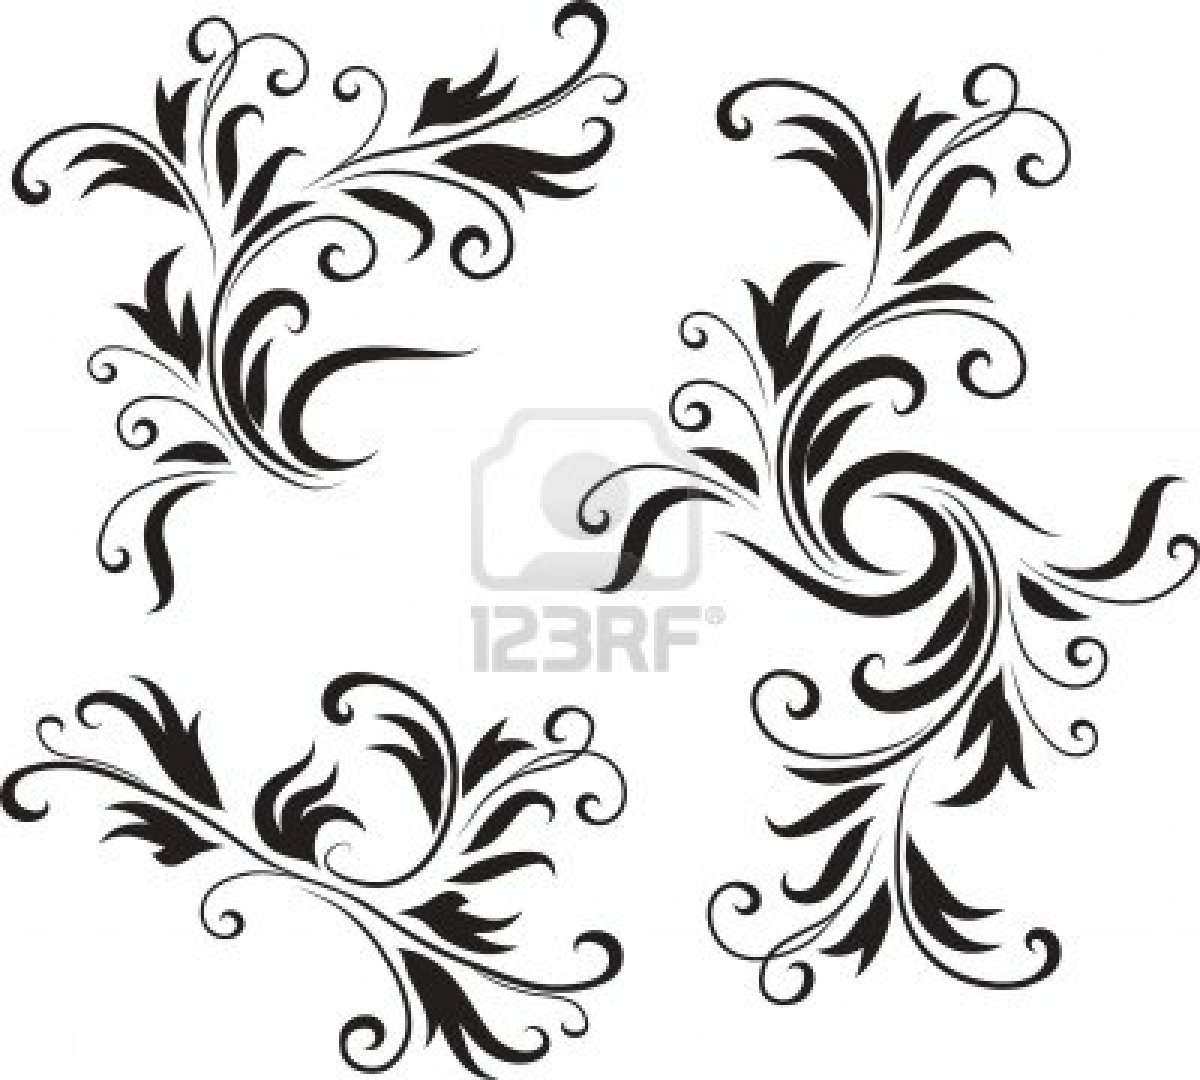 Cool Black And White Patterns 2617 Hd Wallpapers in Others   Imagesci 1200x1080